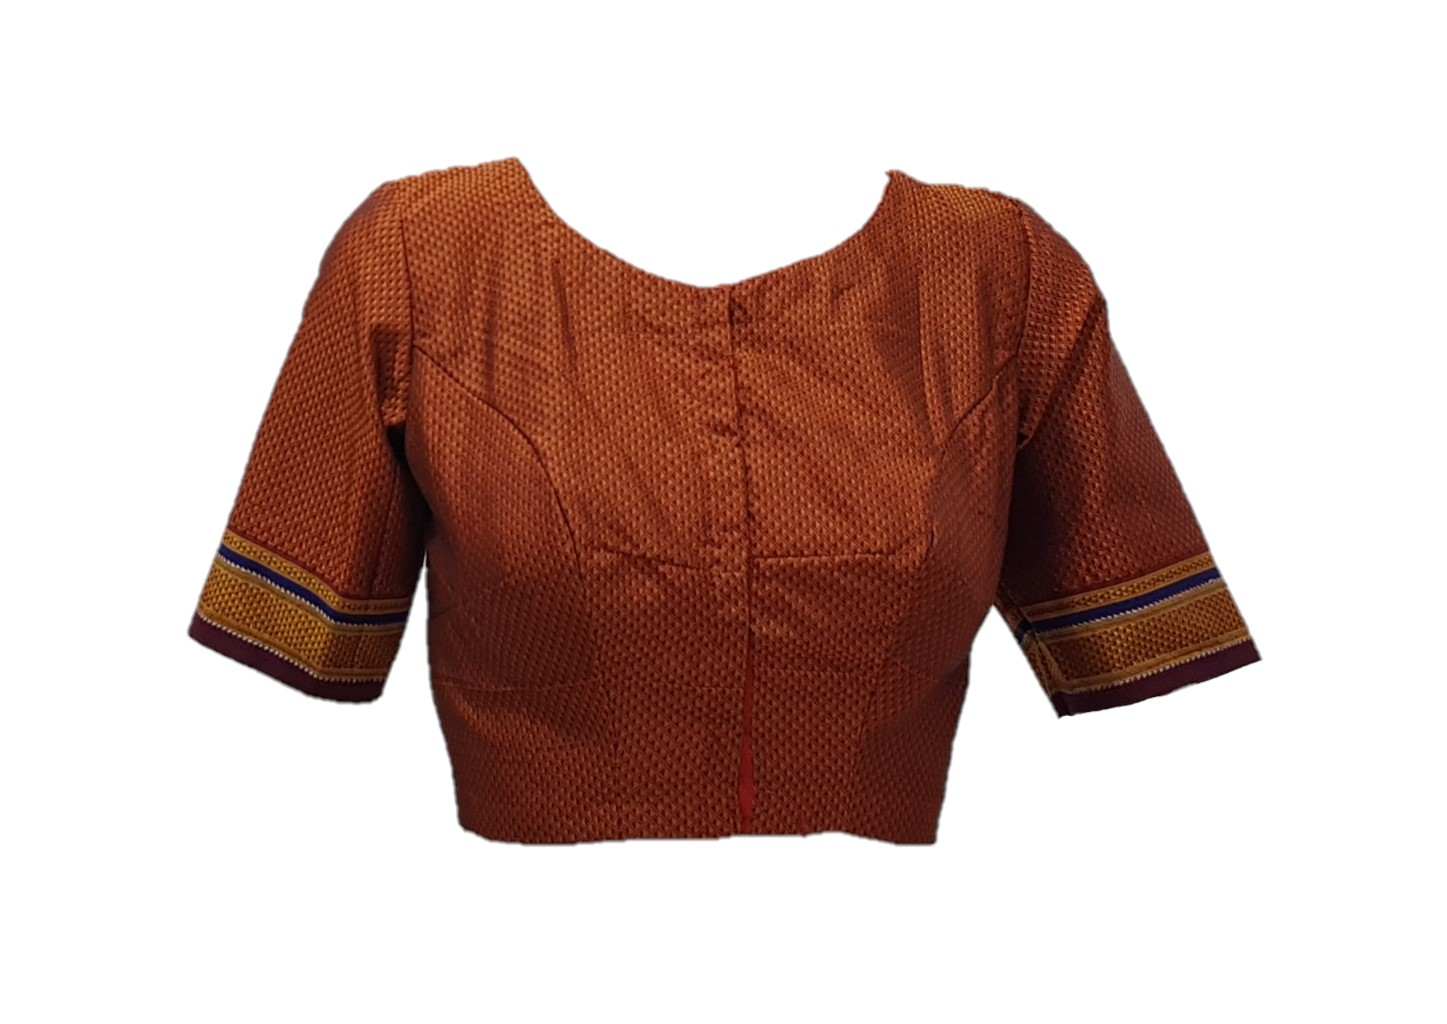 Ilkal Cotton Silk Khun Fabric Boat Neck Readymade Saree Blouse CopperMaroon Size Medium : Picture